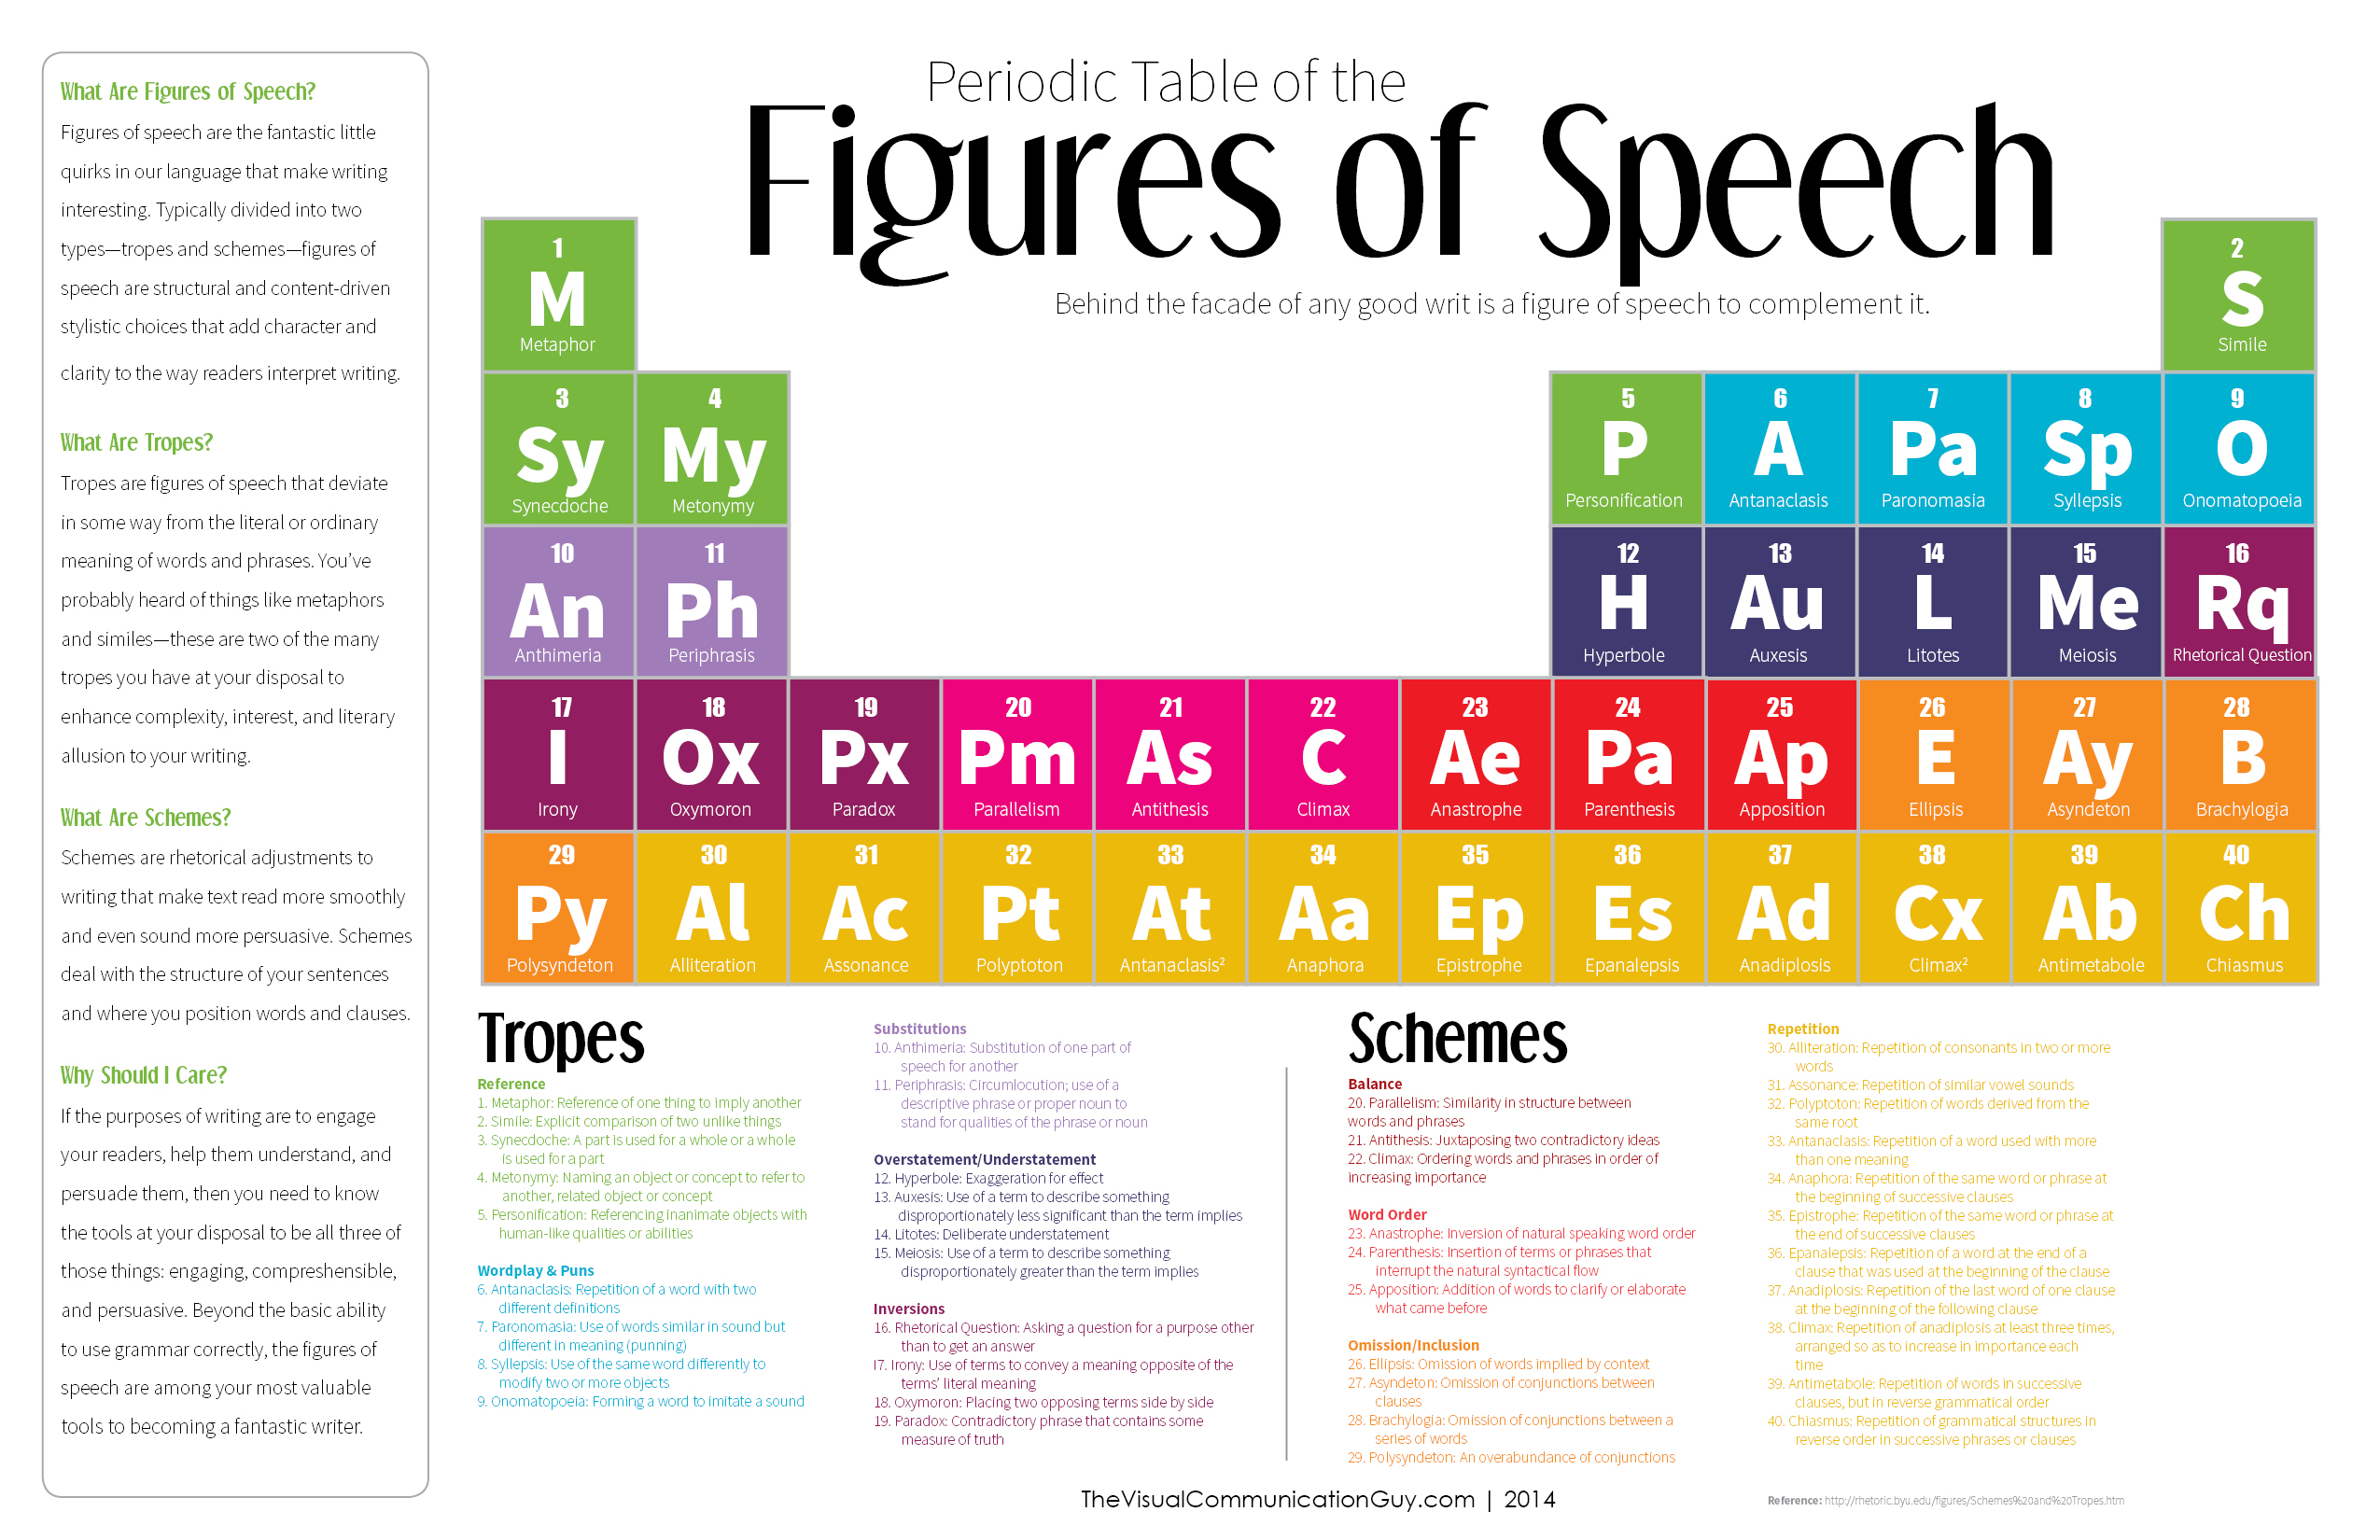 Periodic Table of the Figures of Speech